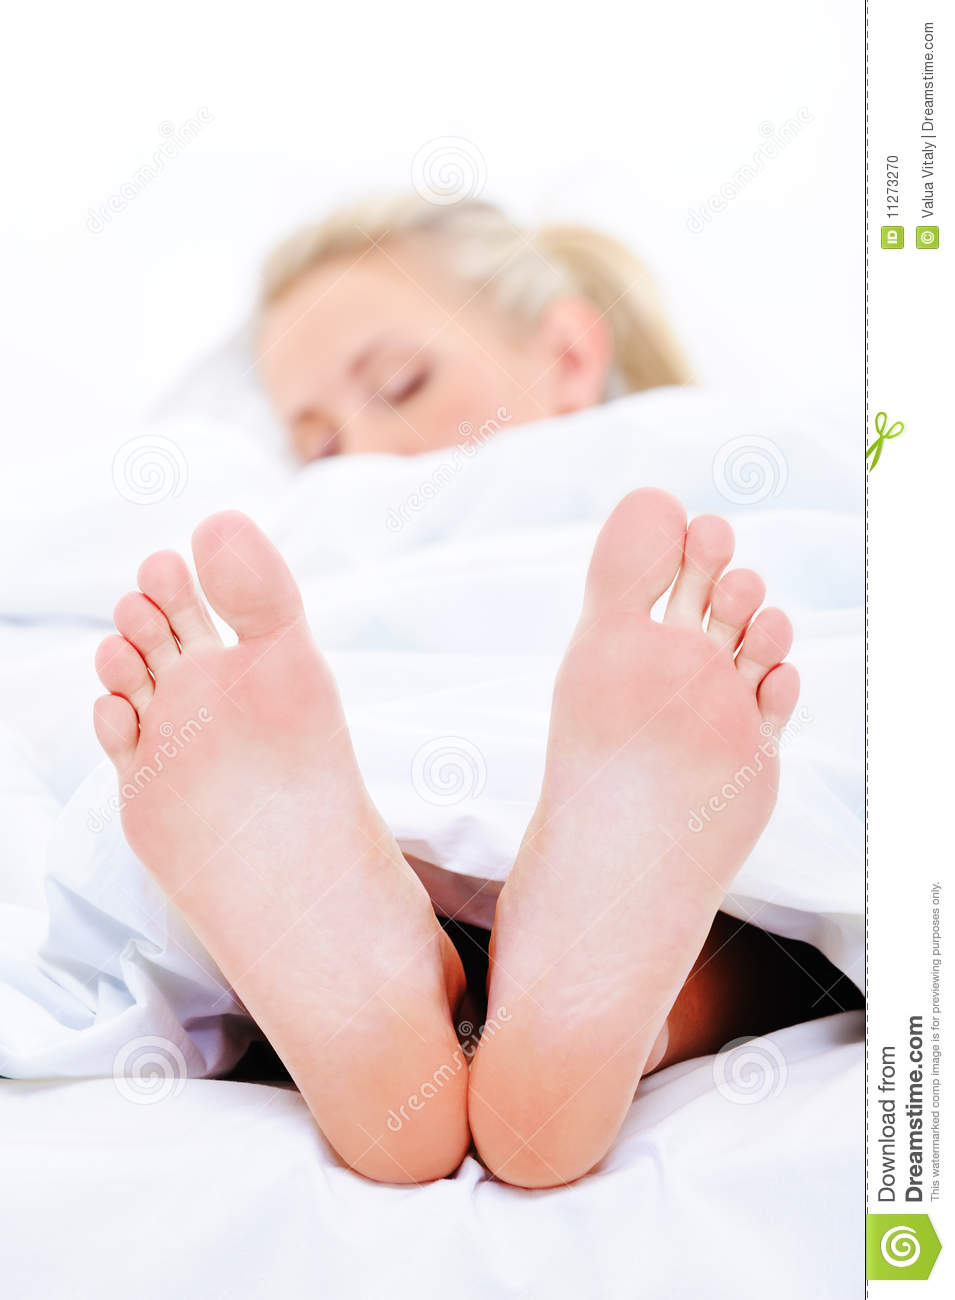 Feet S Definition What Is